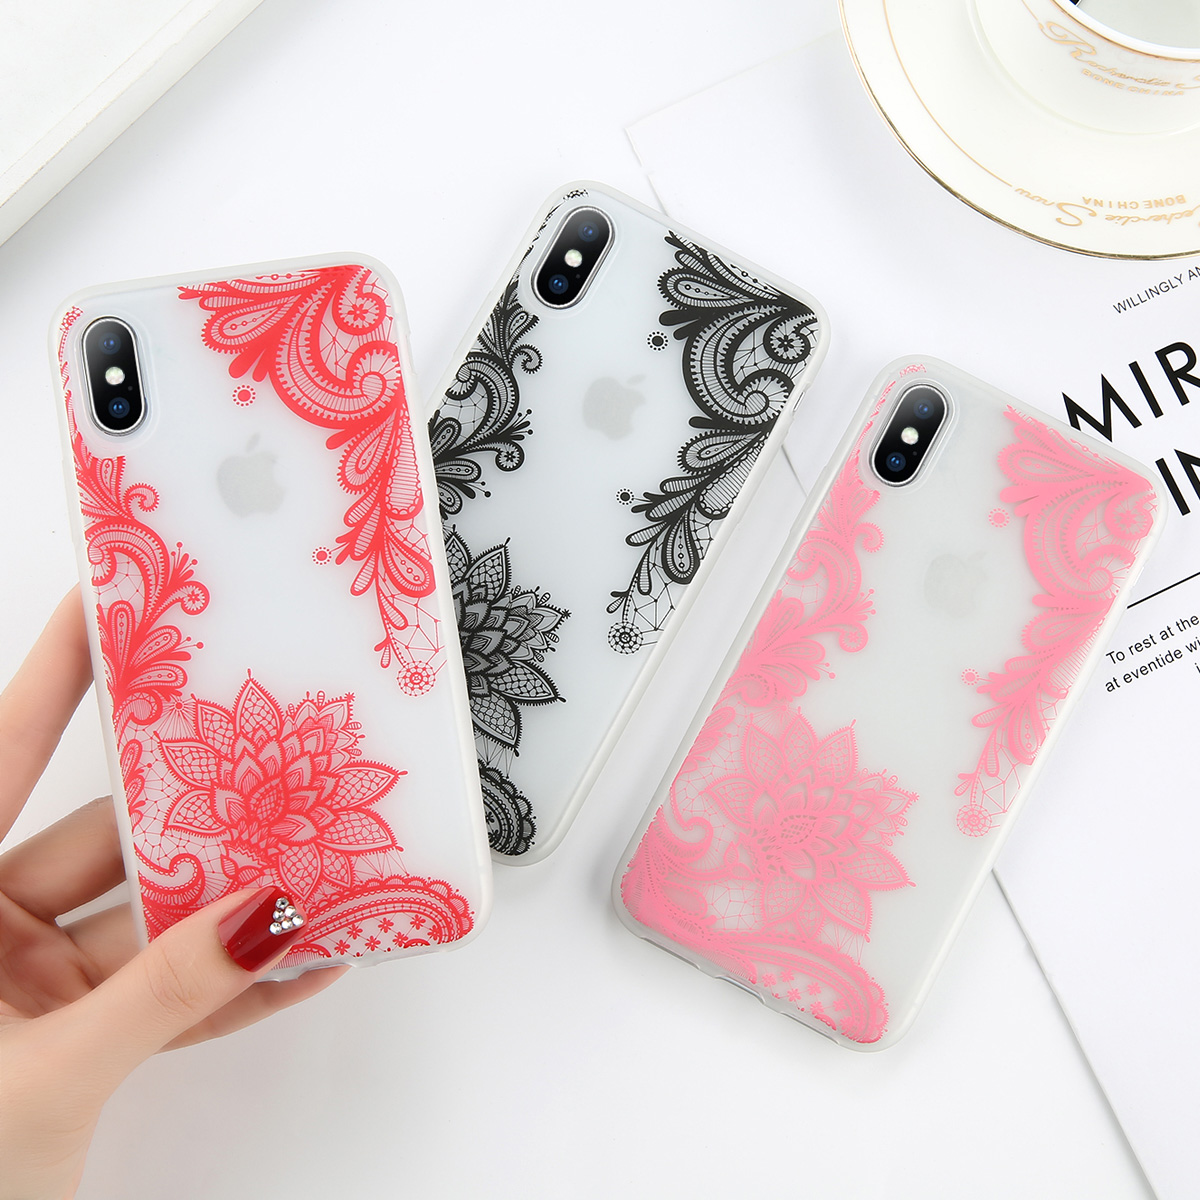 Fashion Phone Case Cover For iPhone 7 6 6s 8 X Plus 5 5s SE XR XS Max Cases Night Noctilucent Flower Soft TPU Case Back Cover in Fitted Cases from Cellphones Telecommunications